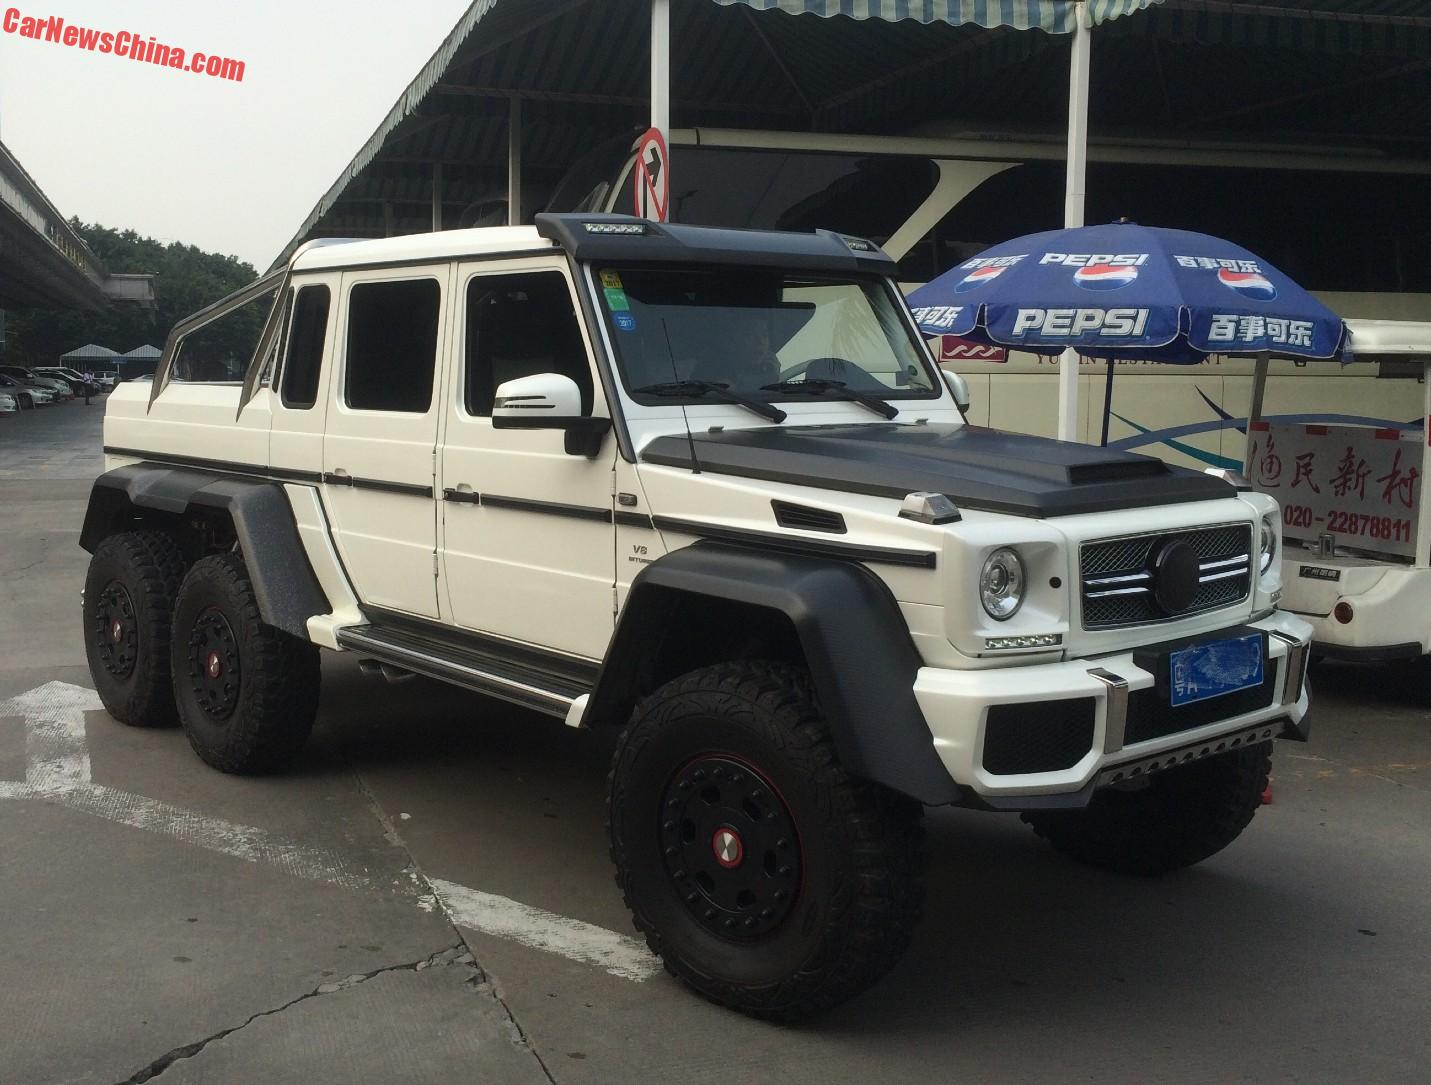 mansory mercedes benz g63 amg 6x6 crashed and burned in china rh carnewschina com